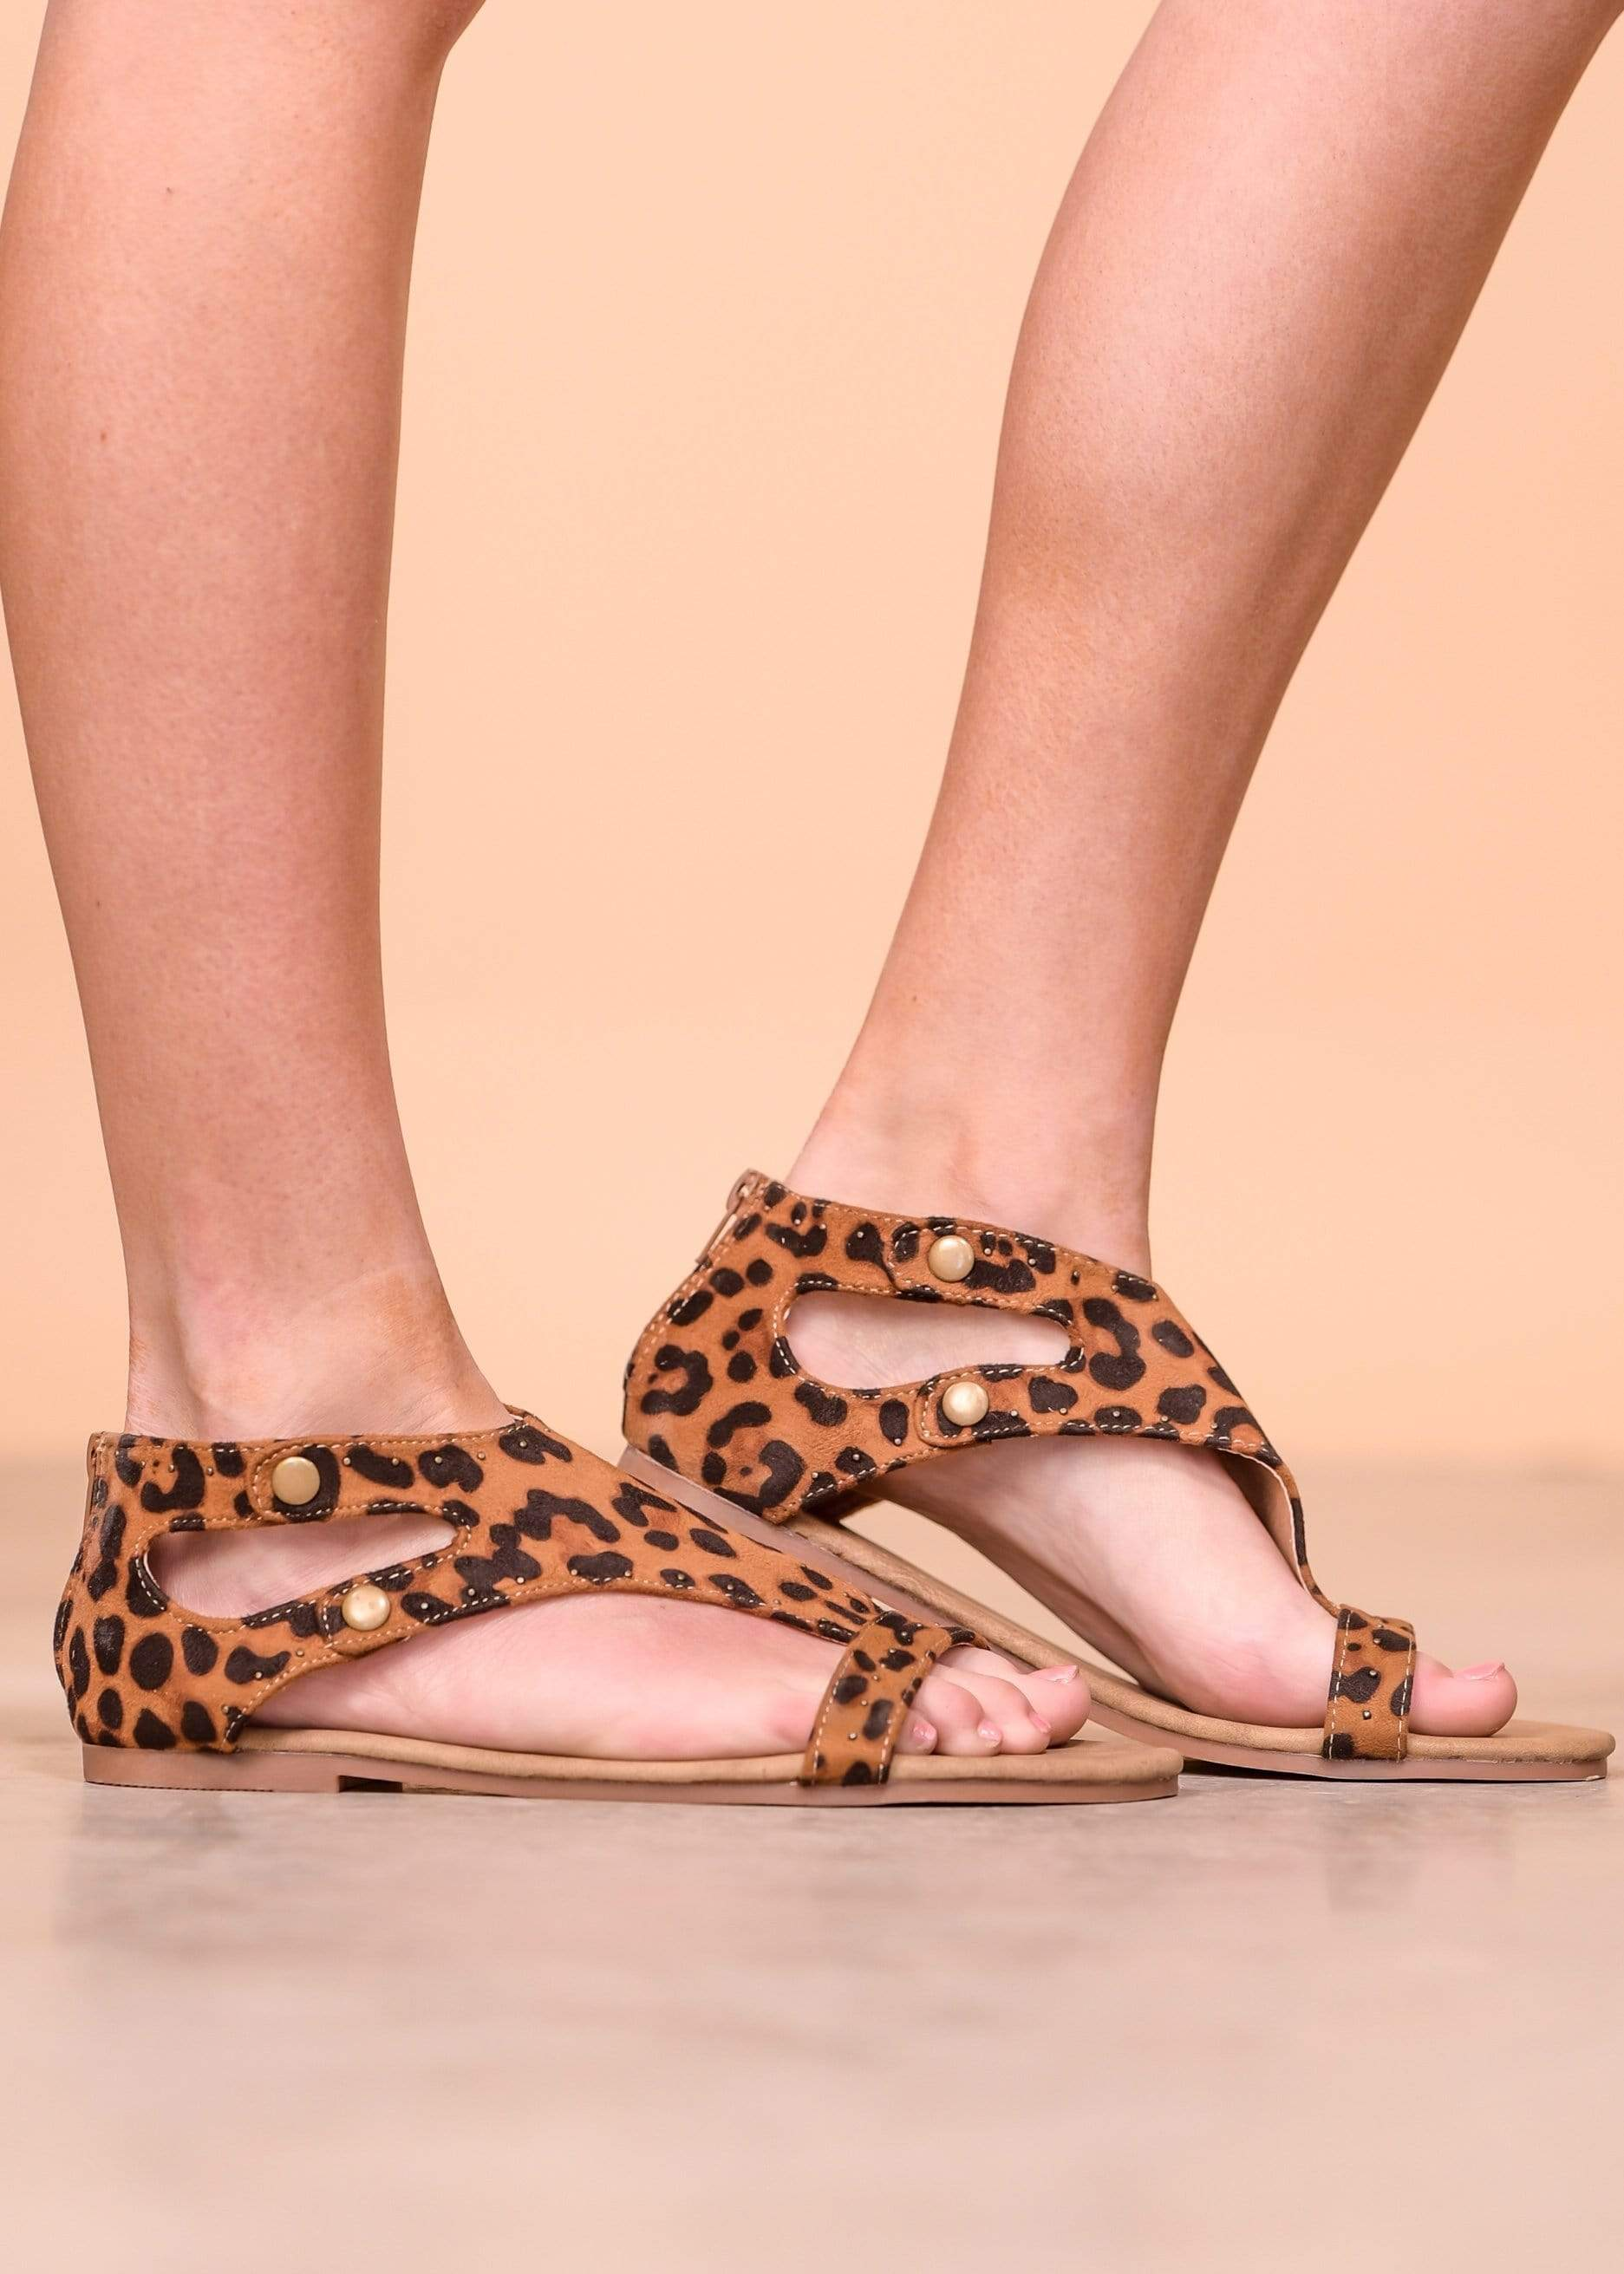 Mata Shoes Sandals Roman - Leopard